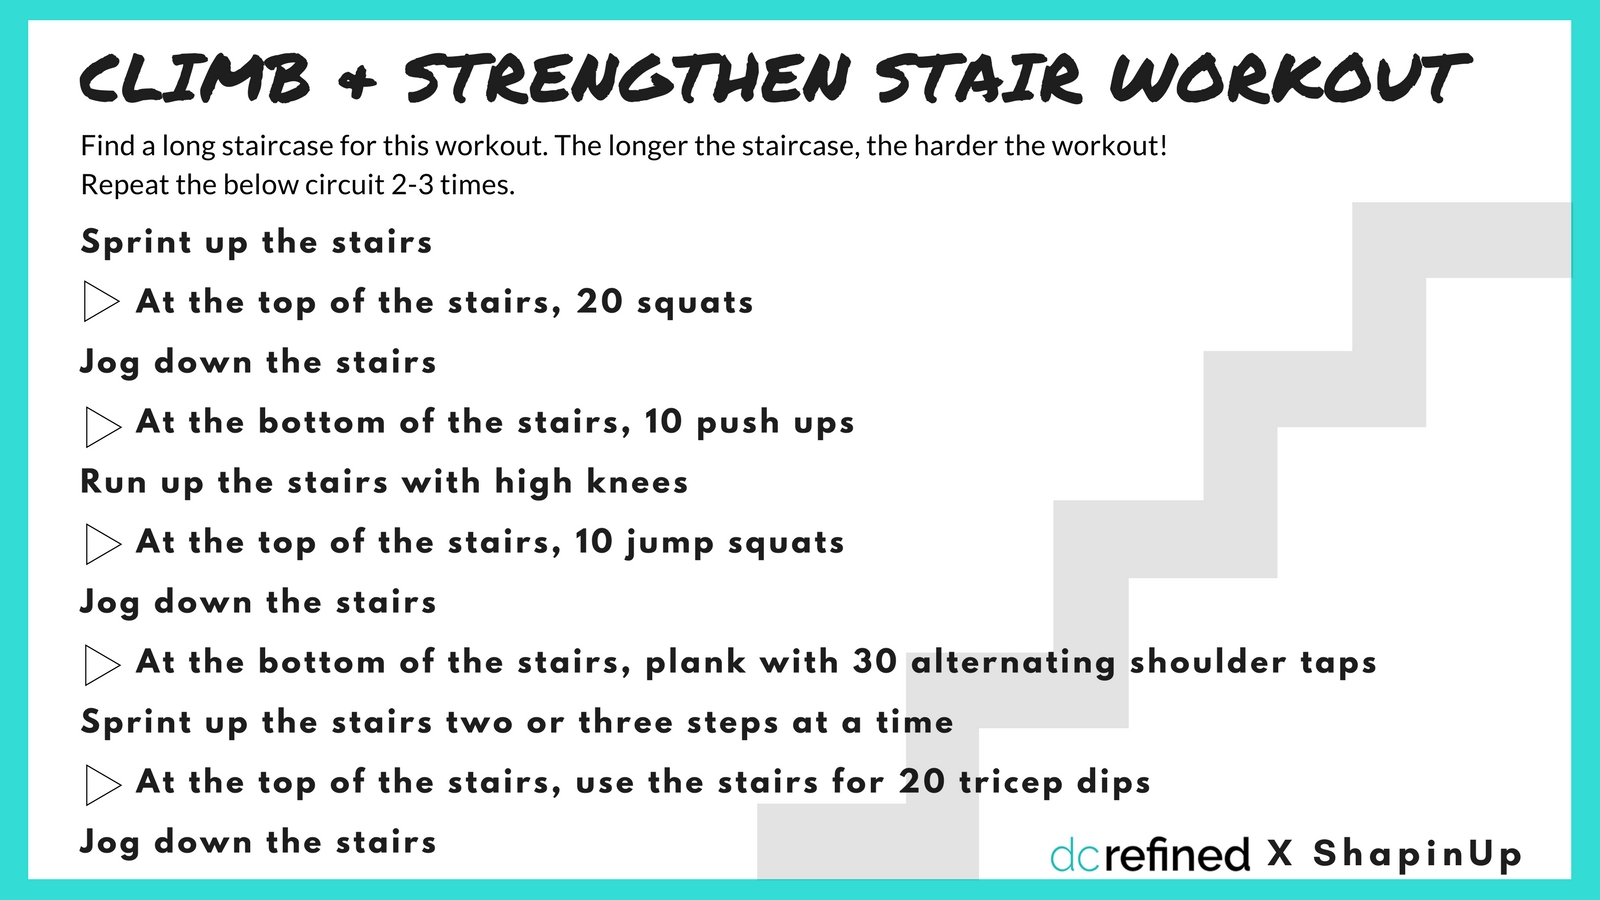 All you need for this workout is a long set of stairs. The longer the staircase you can find, the more you'll get out of this workout. (Image: Amanda Shapin)<p></p>